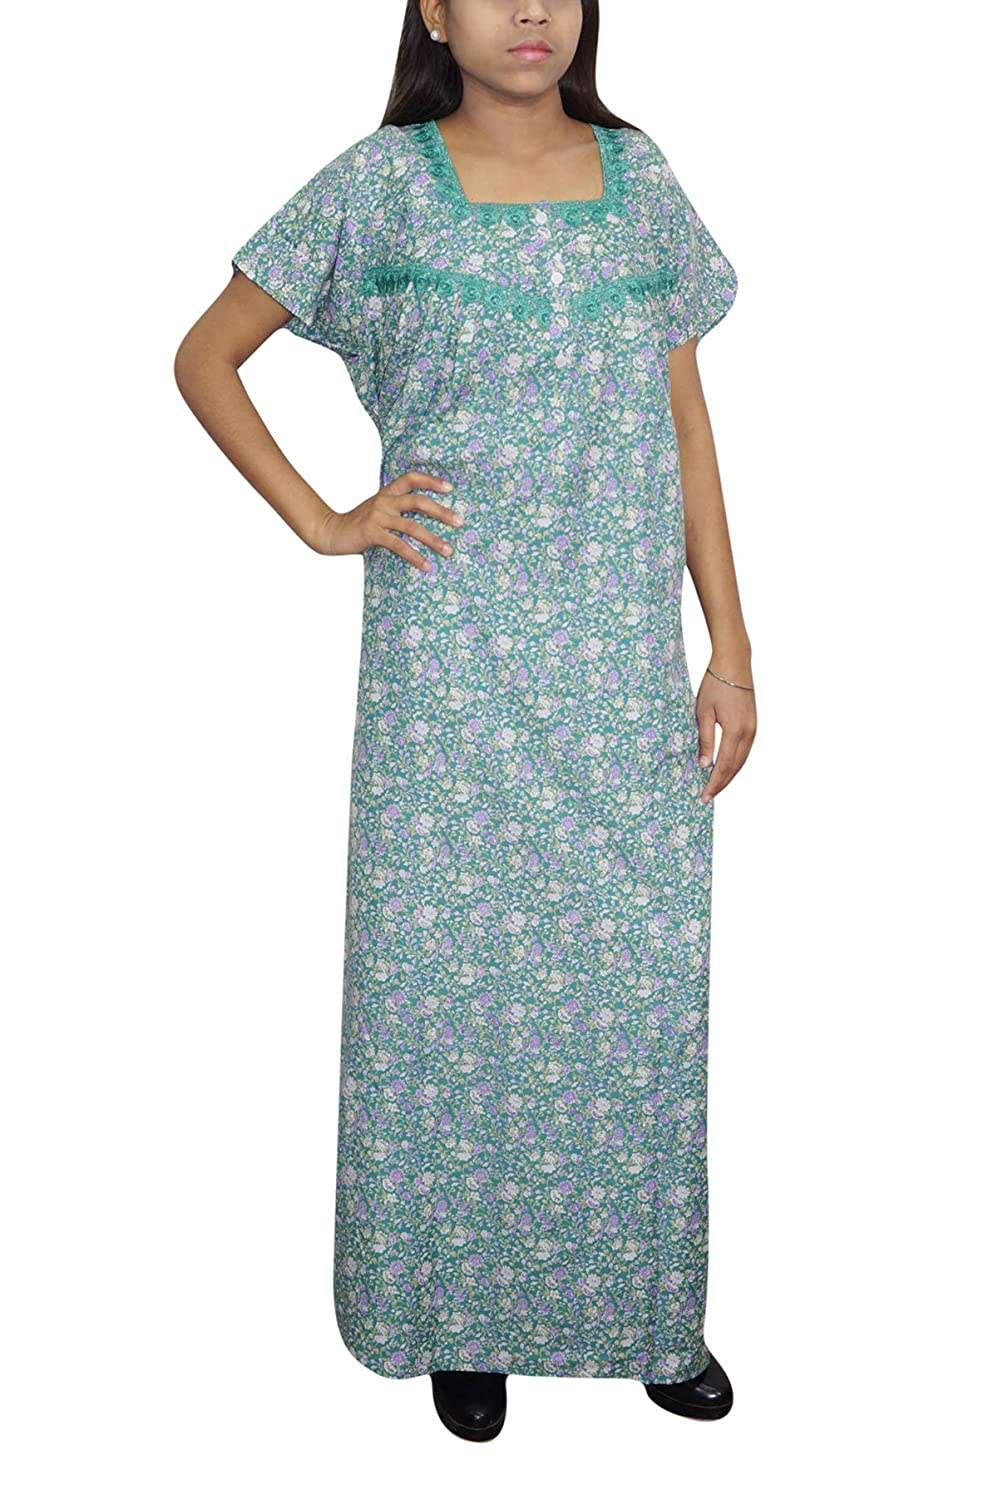 big selection of 2019 amazing quality enjoy lowest price Indiatrendzs Womens Cotton Maxi Gown Floral Print Green ...